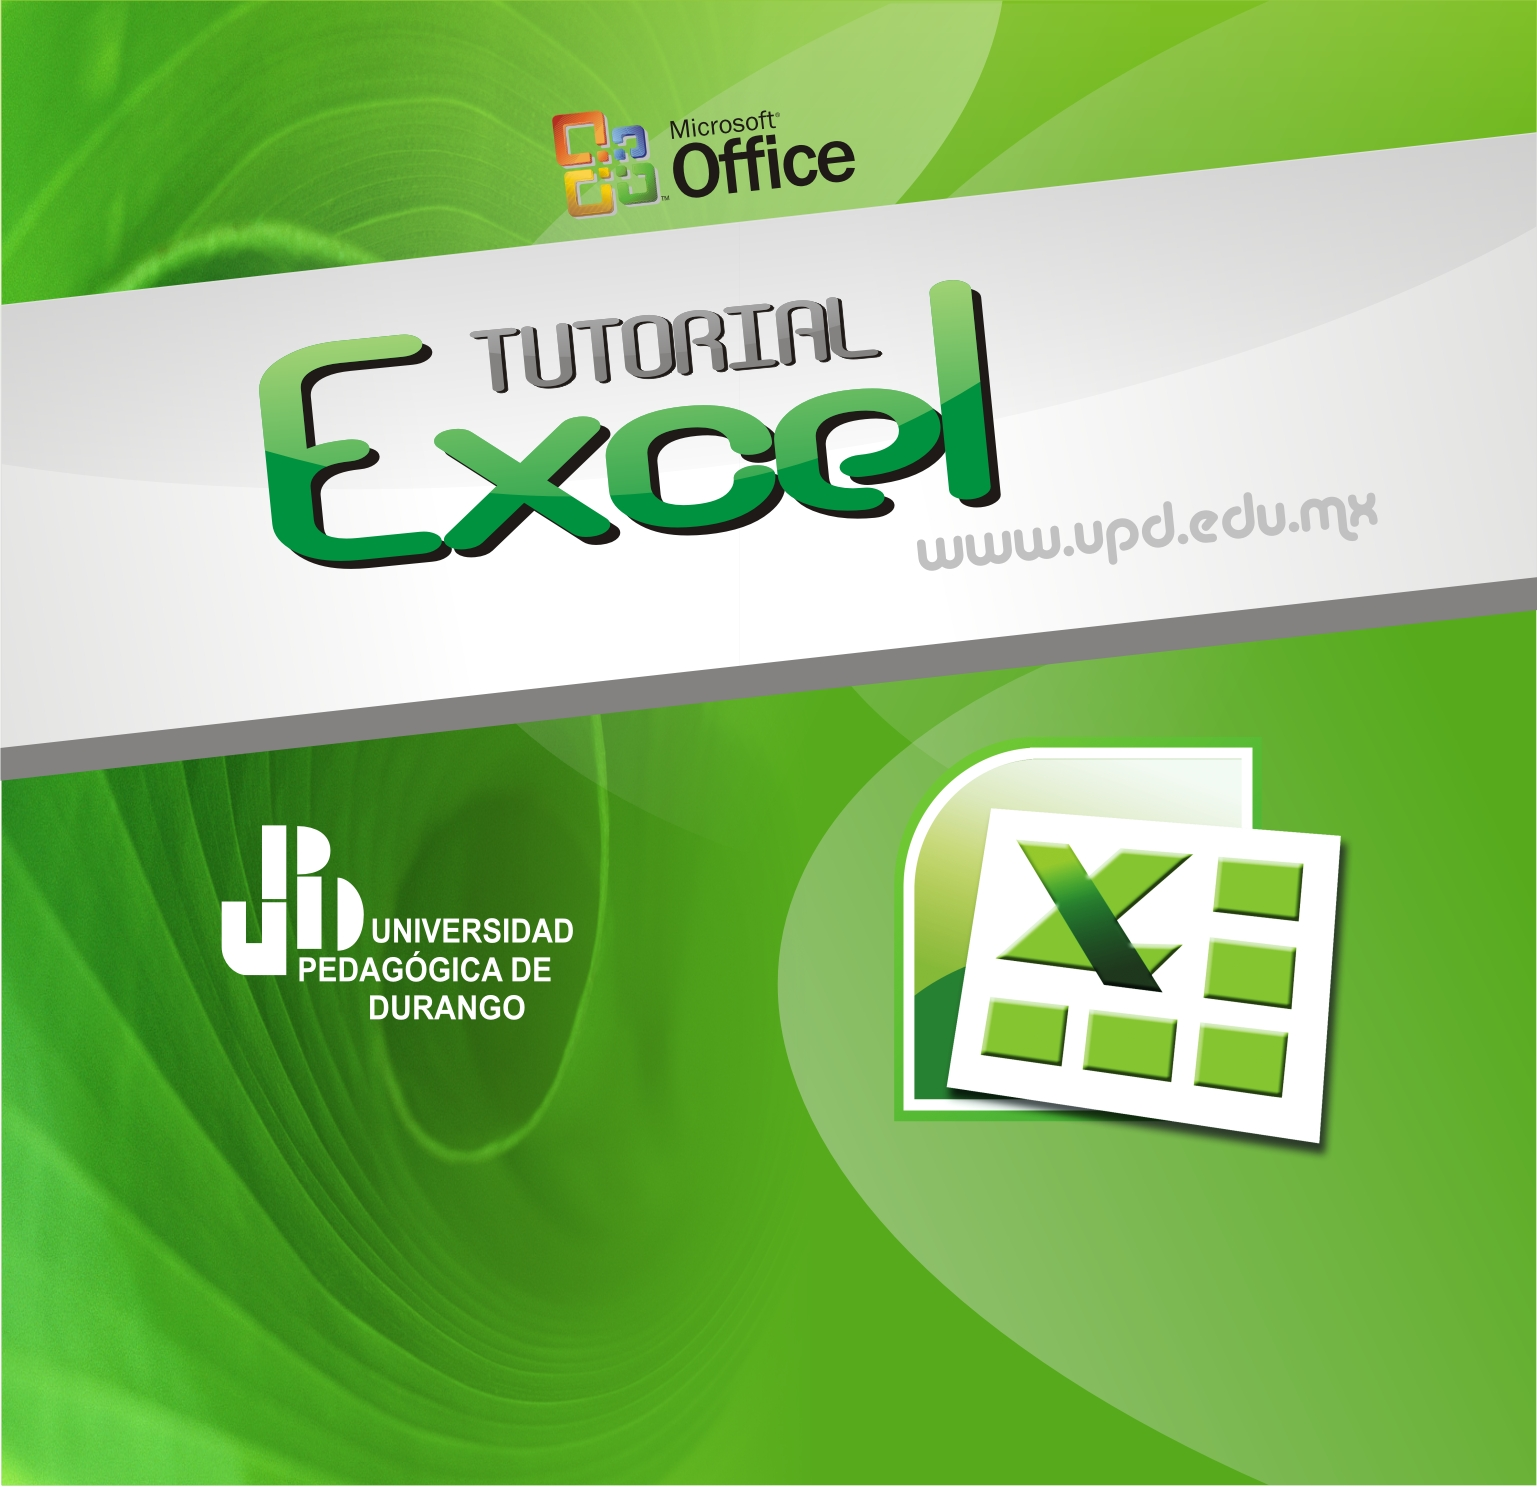 Ediblewildsus  Marvelous The Basics Of Iwork Number For Ms Excel Users  Radical Hub With Extraordinary Tutorexcel With Enchanting Excel File Converter Also How To Group In Excel  In Addition Mobile Excel And How To Use An Excel Spreadsheet As Well As Training Calendar Template Excel Additionally Excel To Txt From Radicalhubcom With Ediblewildsus  Extraordinary The Basics Of Iwork Number For Ms Excel Users  Radical Hub With Enchanting Tutorexcel And Marvelous Excel File Converter Also How To Group In Excel  In Addition Mobile Excel From Radicalhubcom